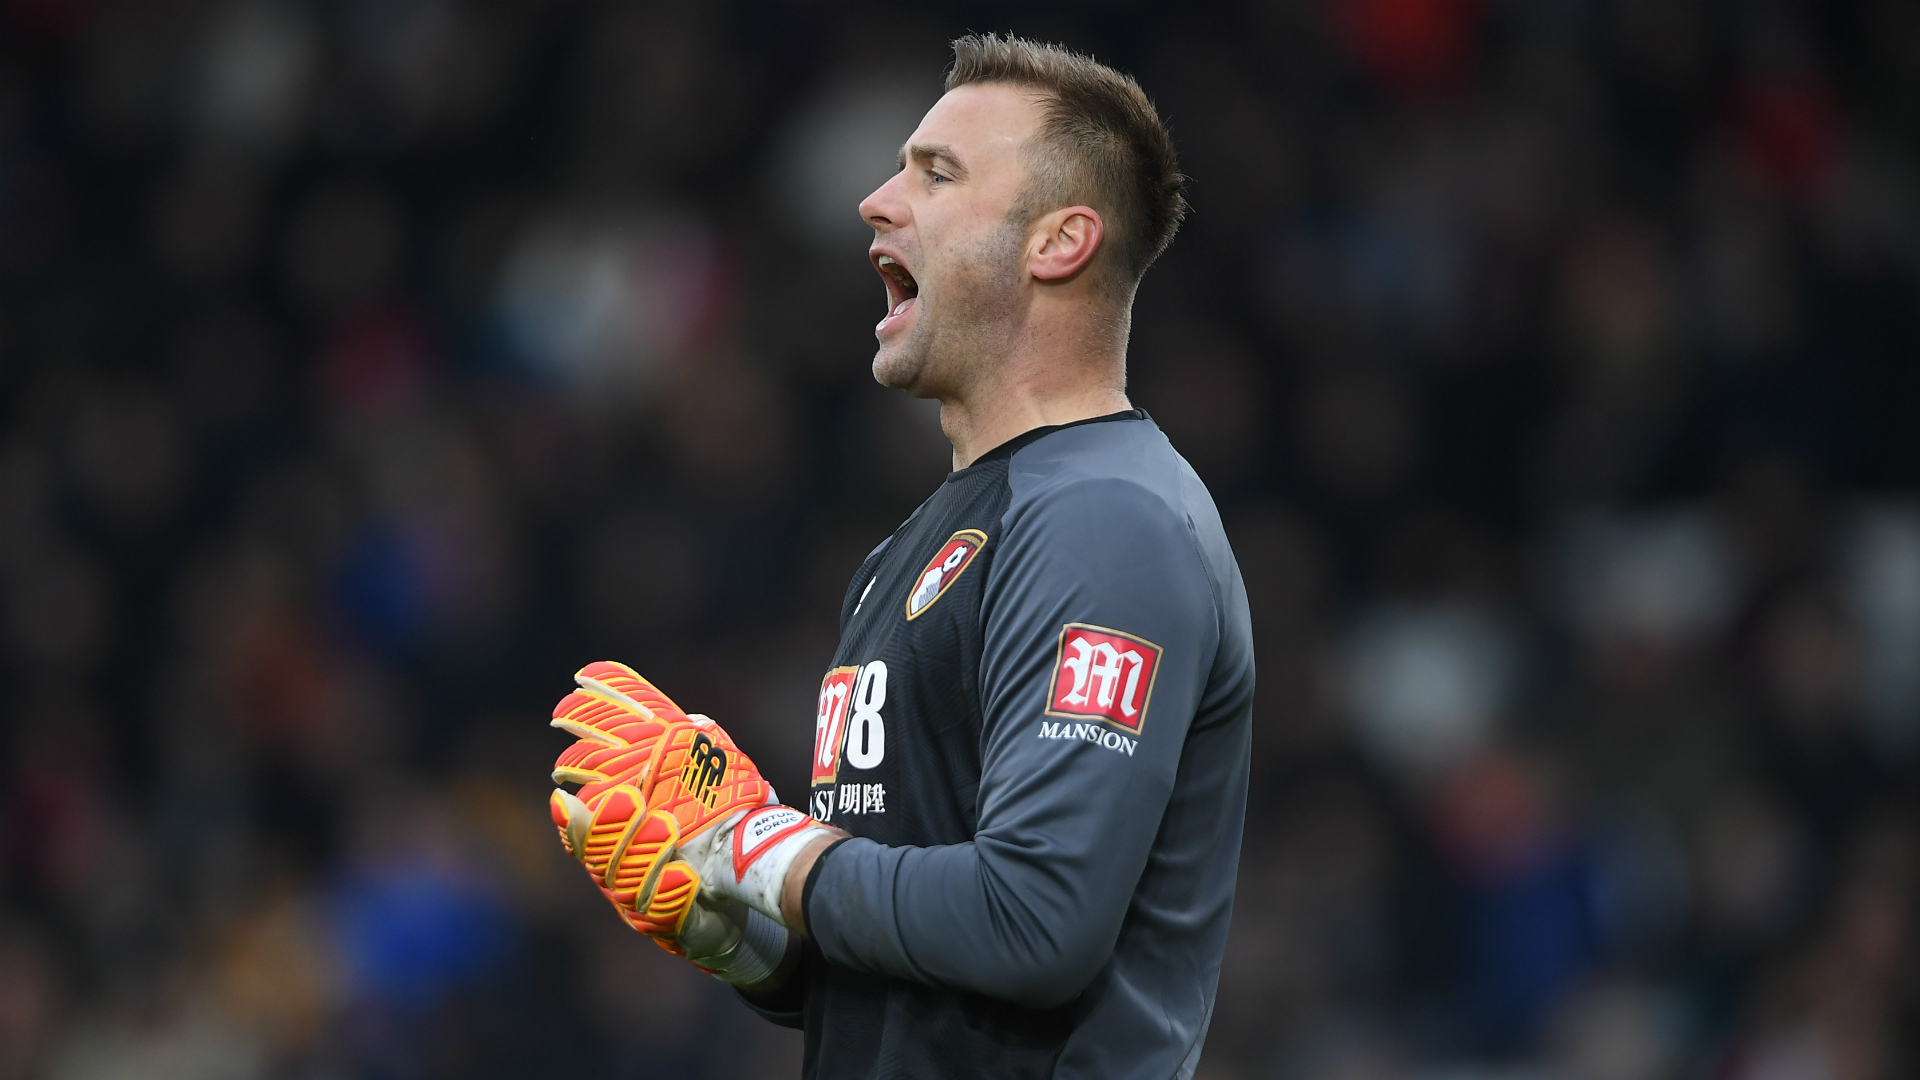 Artur Boruc signs up for one more year at Bournemouth